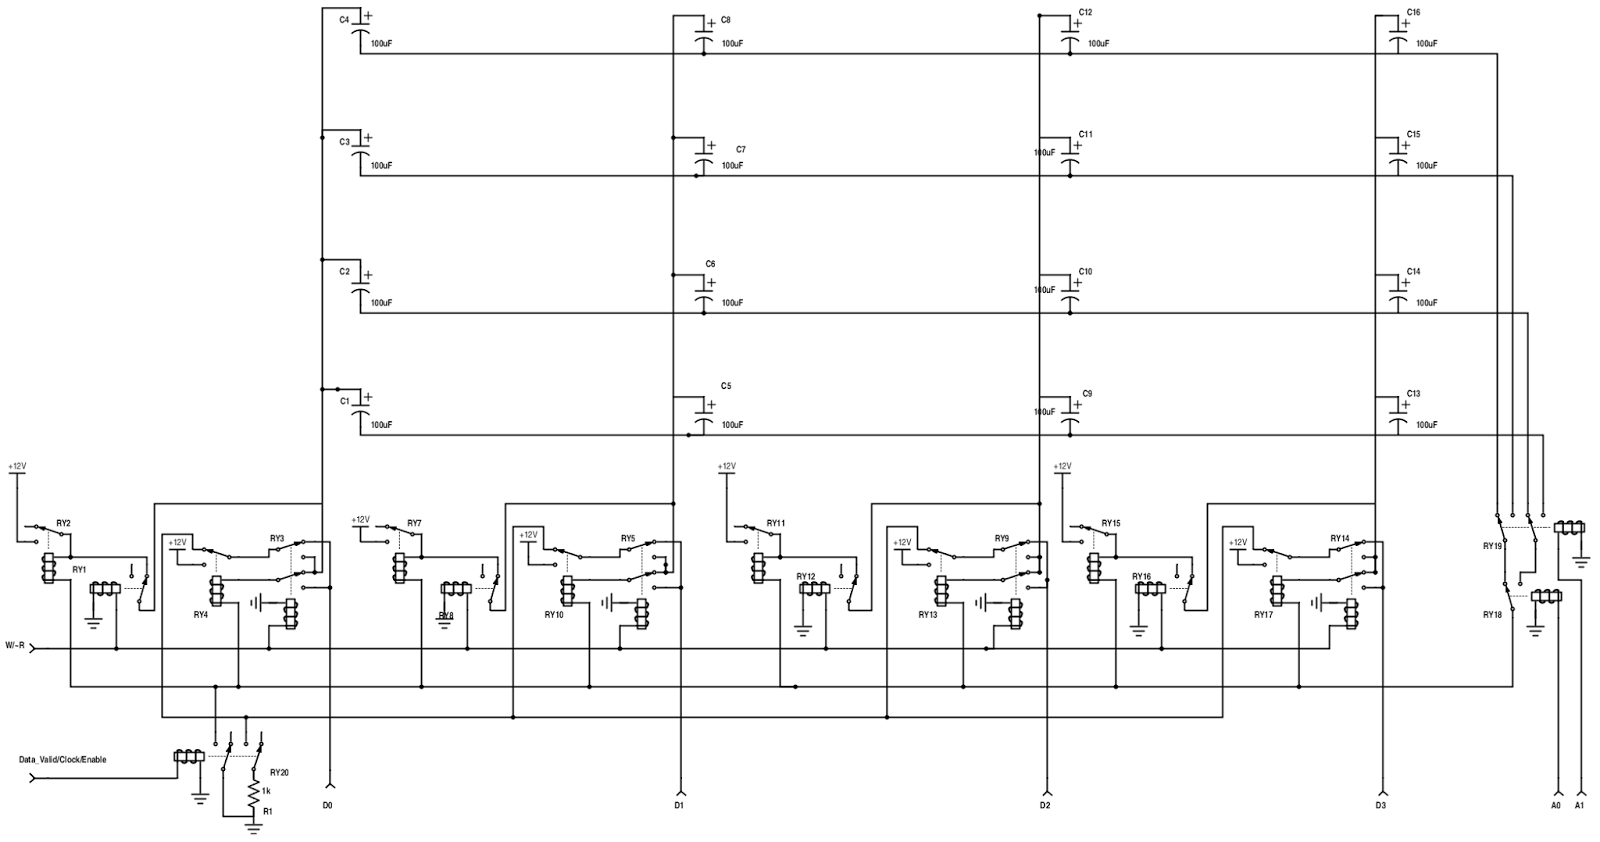 medium resolution of this circuit is a 4 x 4 bit example of the design but hopefully you can see how it scales for a 16 bit 128 word memory the above circuit would require